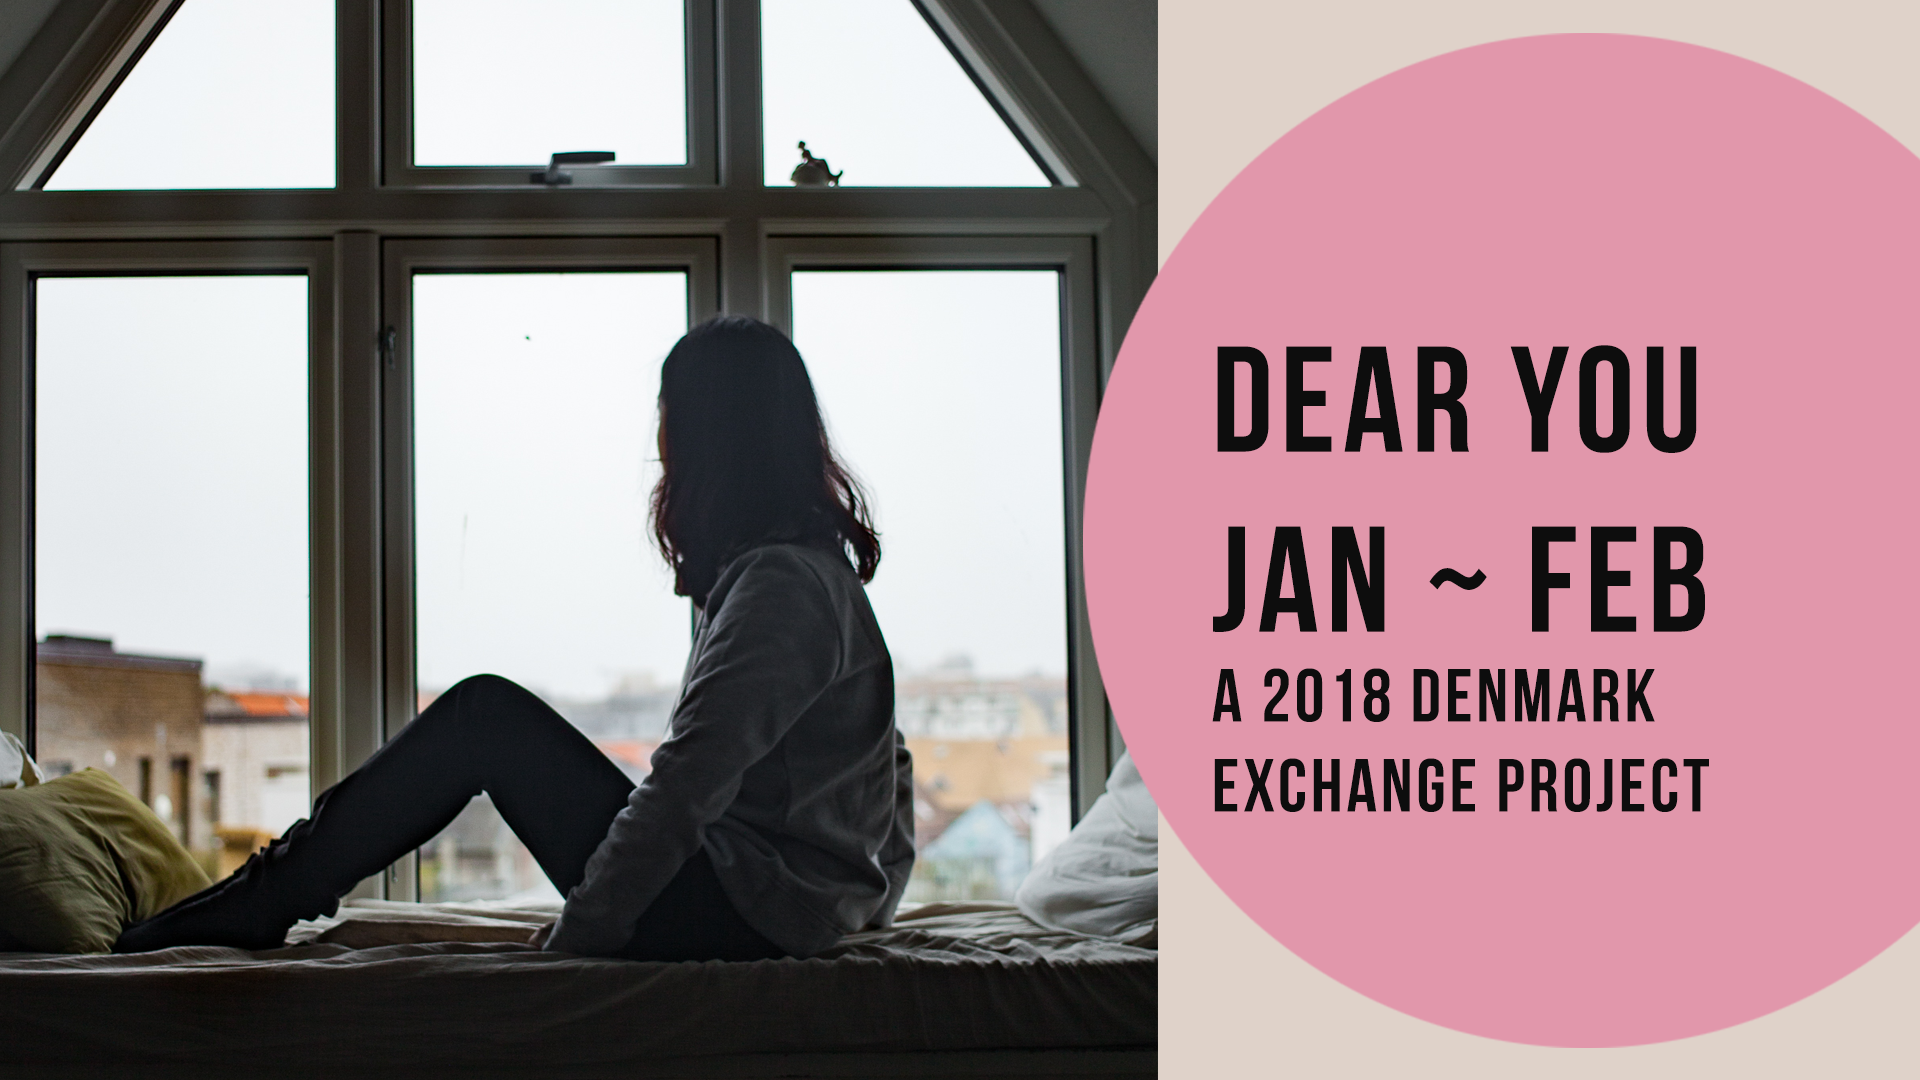 DEAR YOU - A series of personal reflections created while on university exchange in Aarhus, Denmark